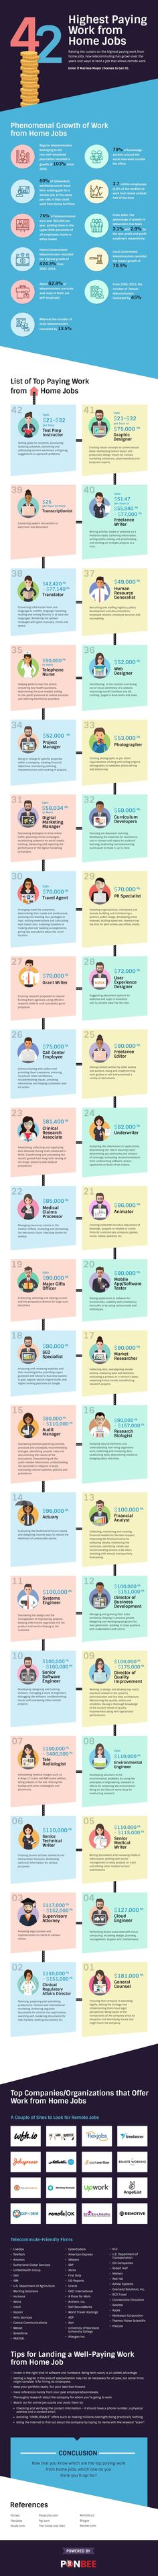 42 Highest Paying Work from Home Jobs - #infographic